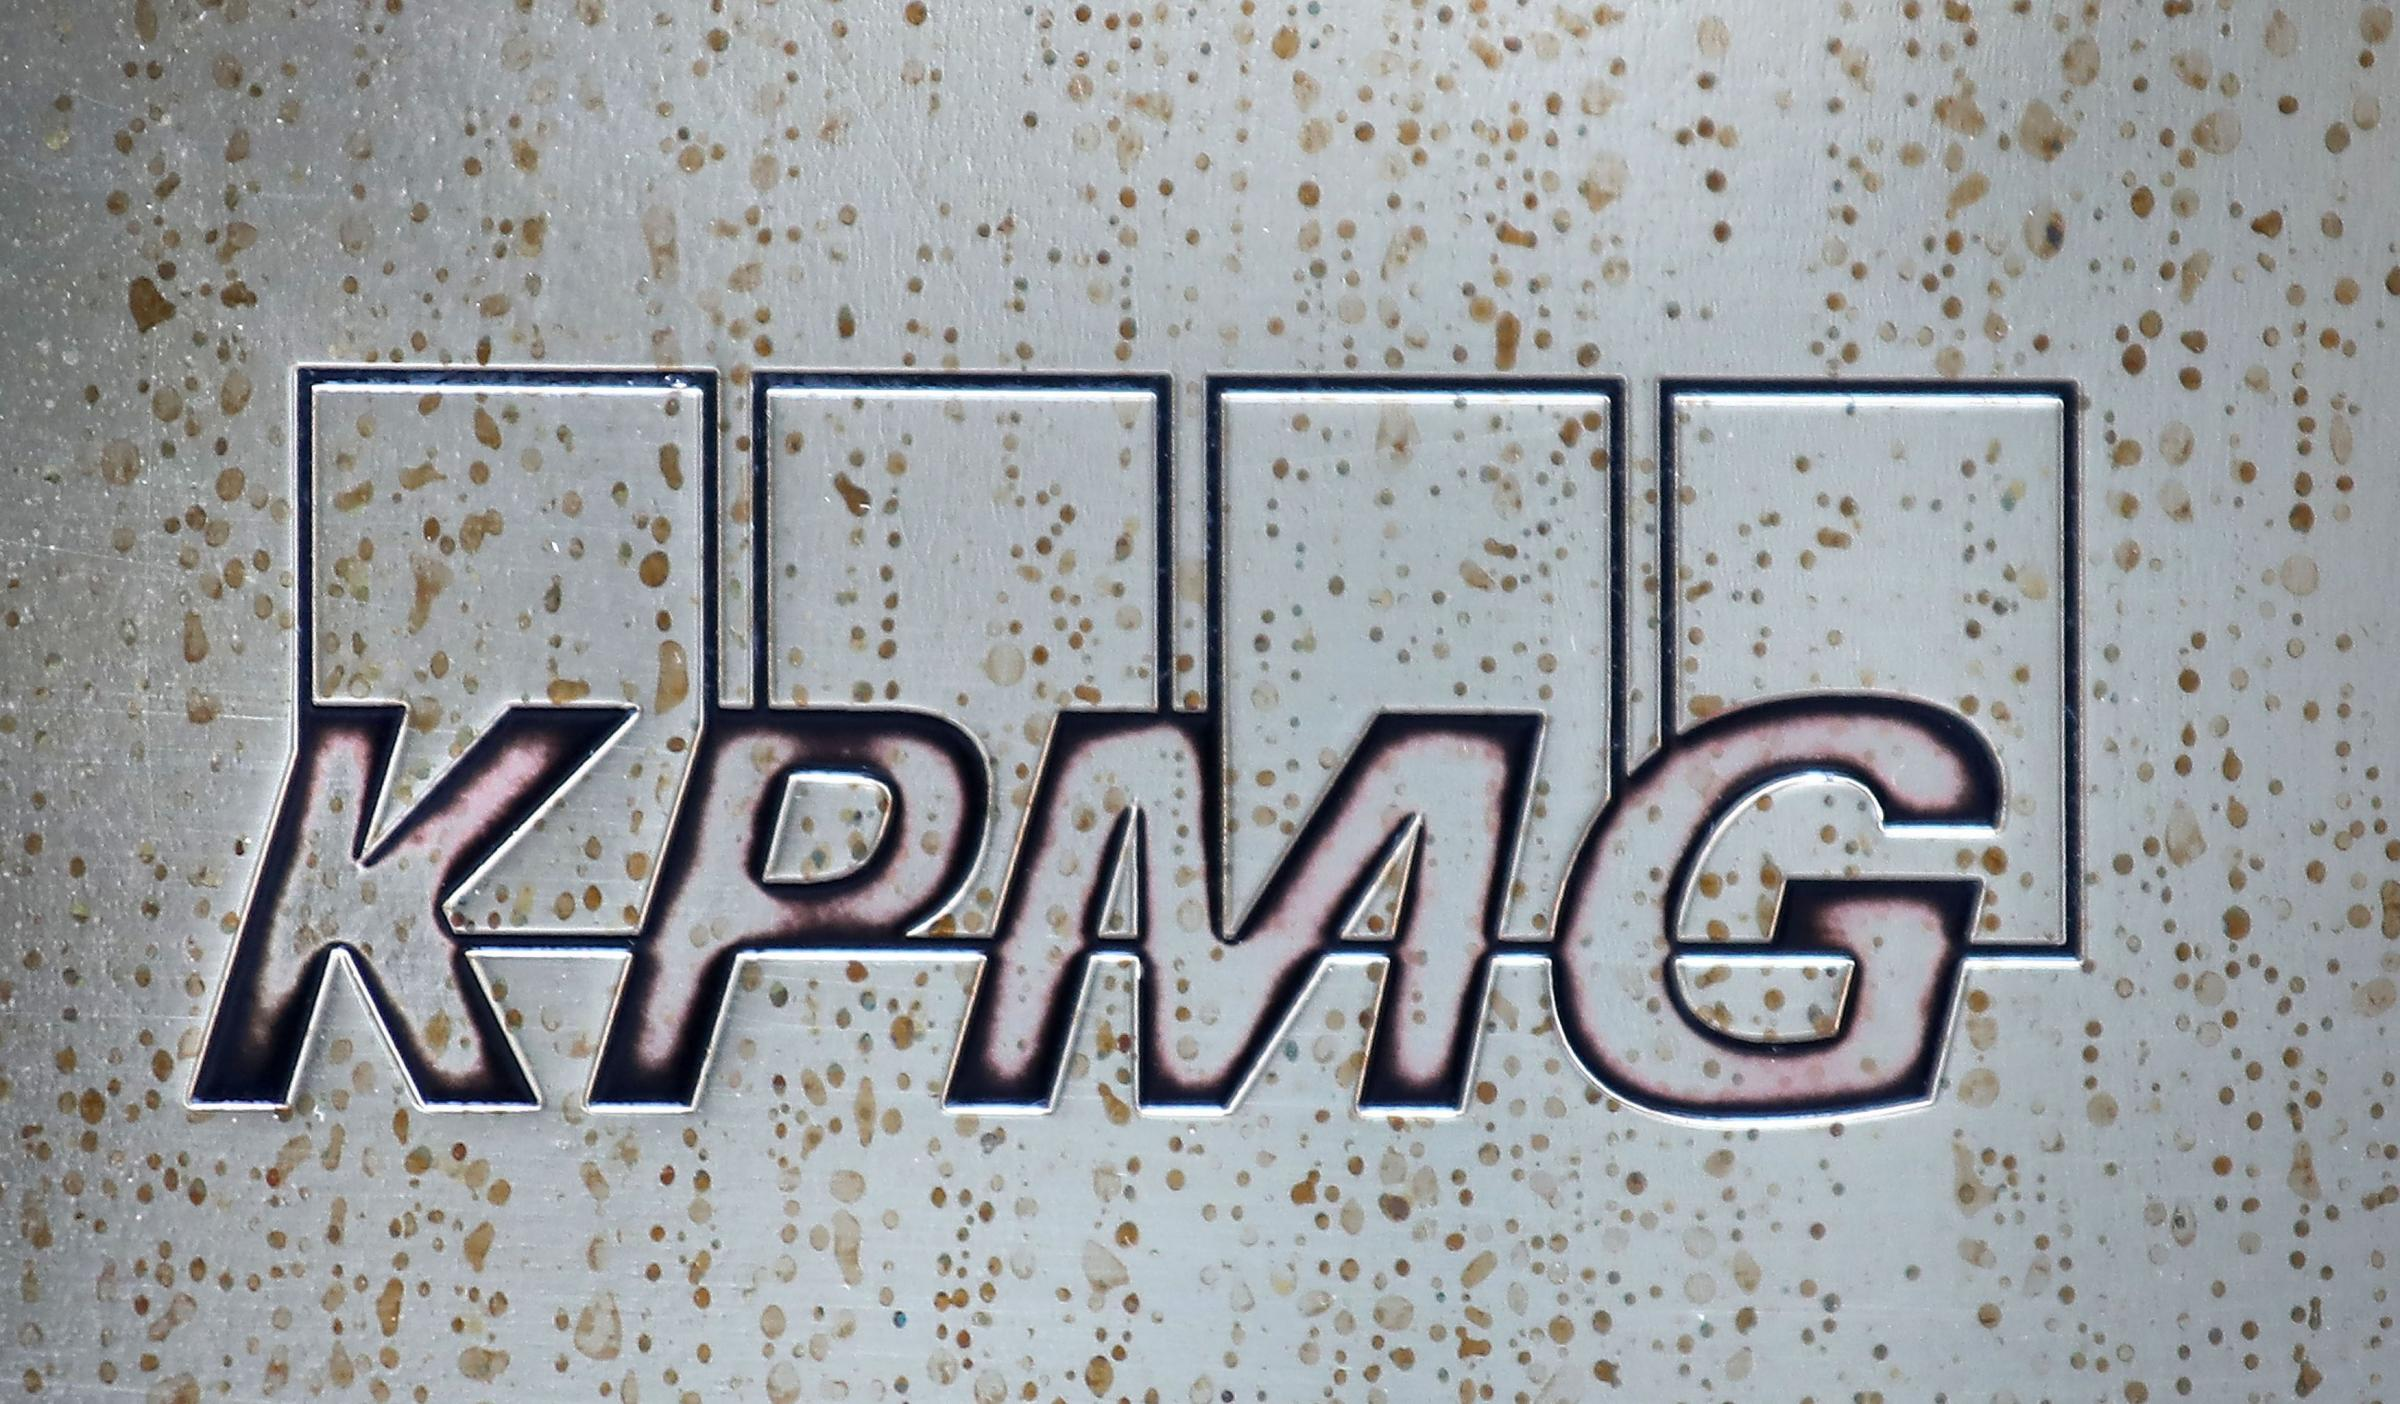 Glasgow set for 400 jobs boost as service giant KPMG announces new city hub